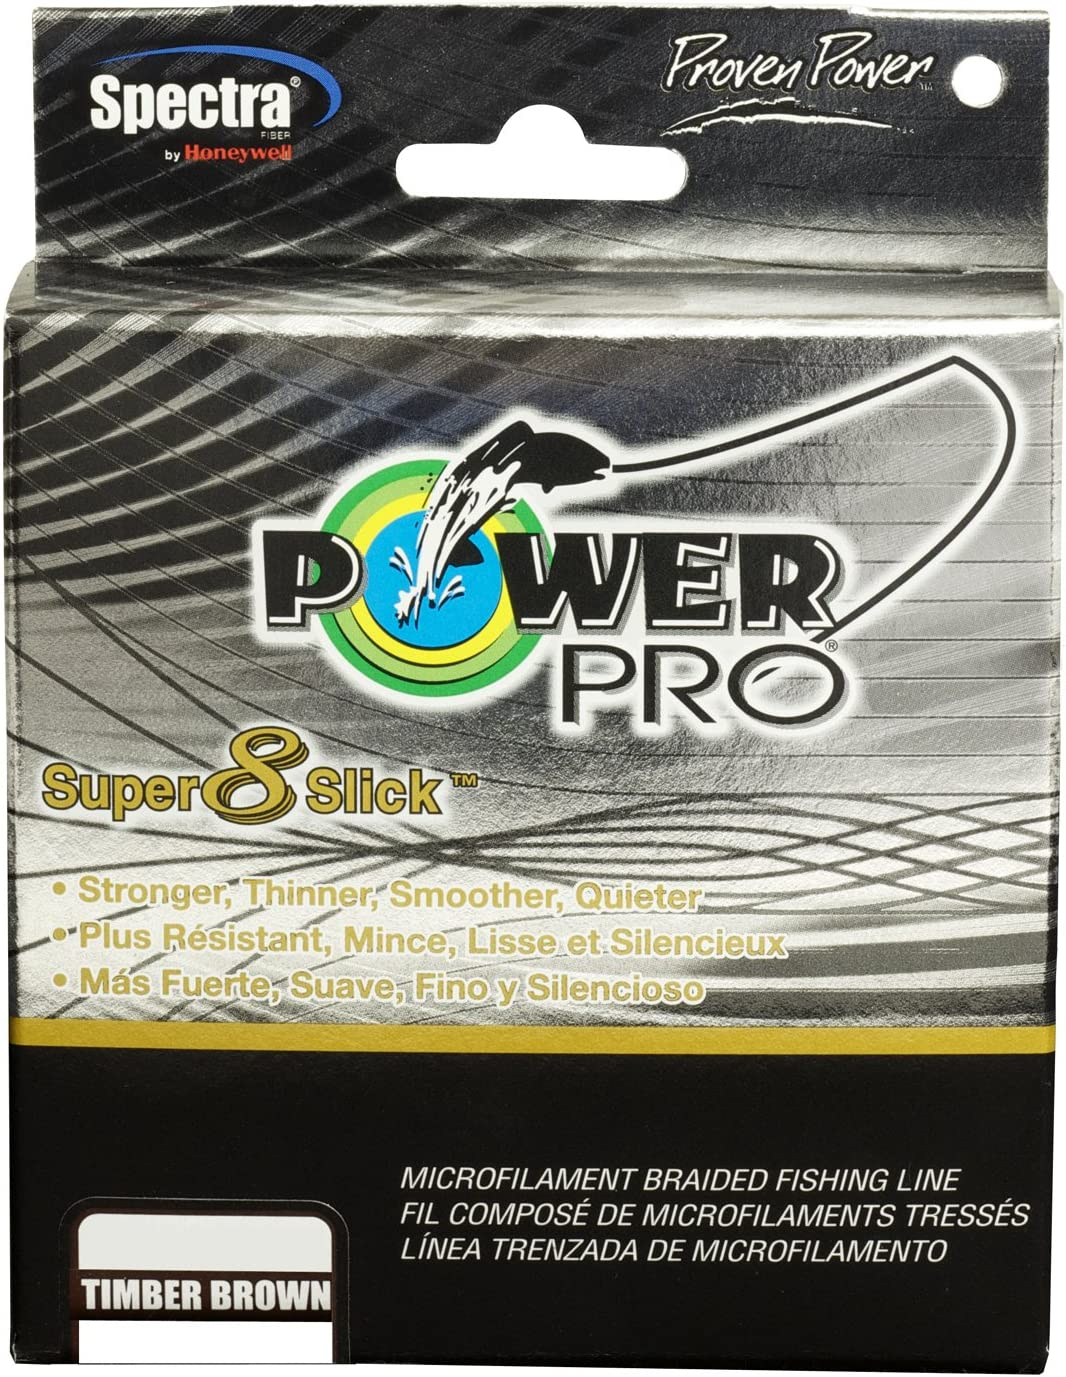 POWER PRO Powerpro Super 8 Slick Line 150 -Yard Timber Brown – 65-Pound Test